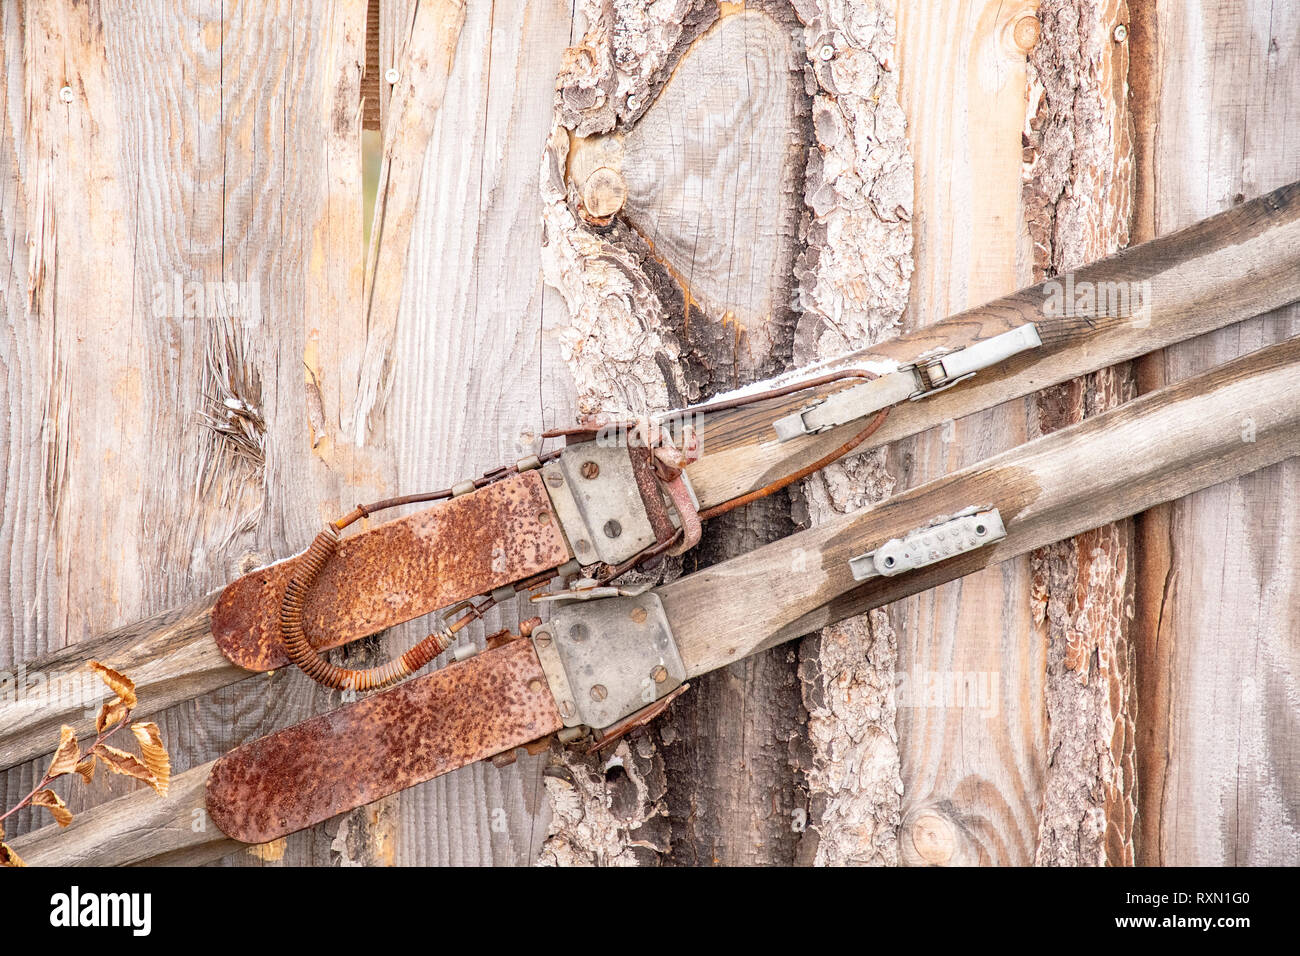 Old Rusty Wooden Cross Country Skis On A Wooden Wall Stock Photo